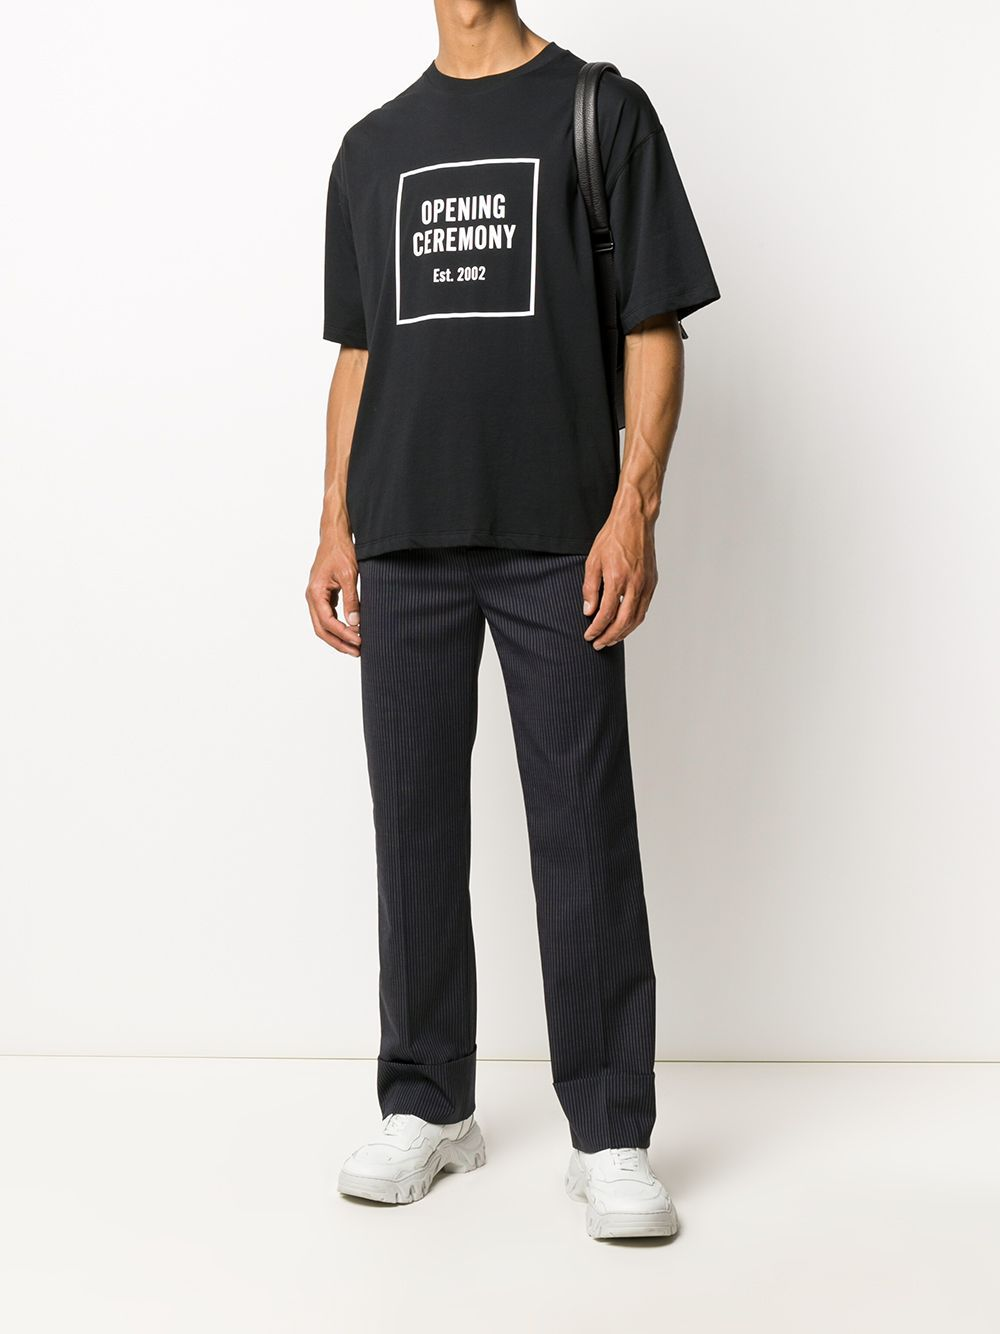 Opening Ceremony Box Logo Print T-shirt Black